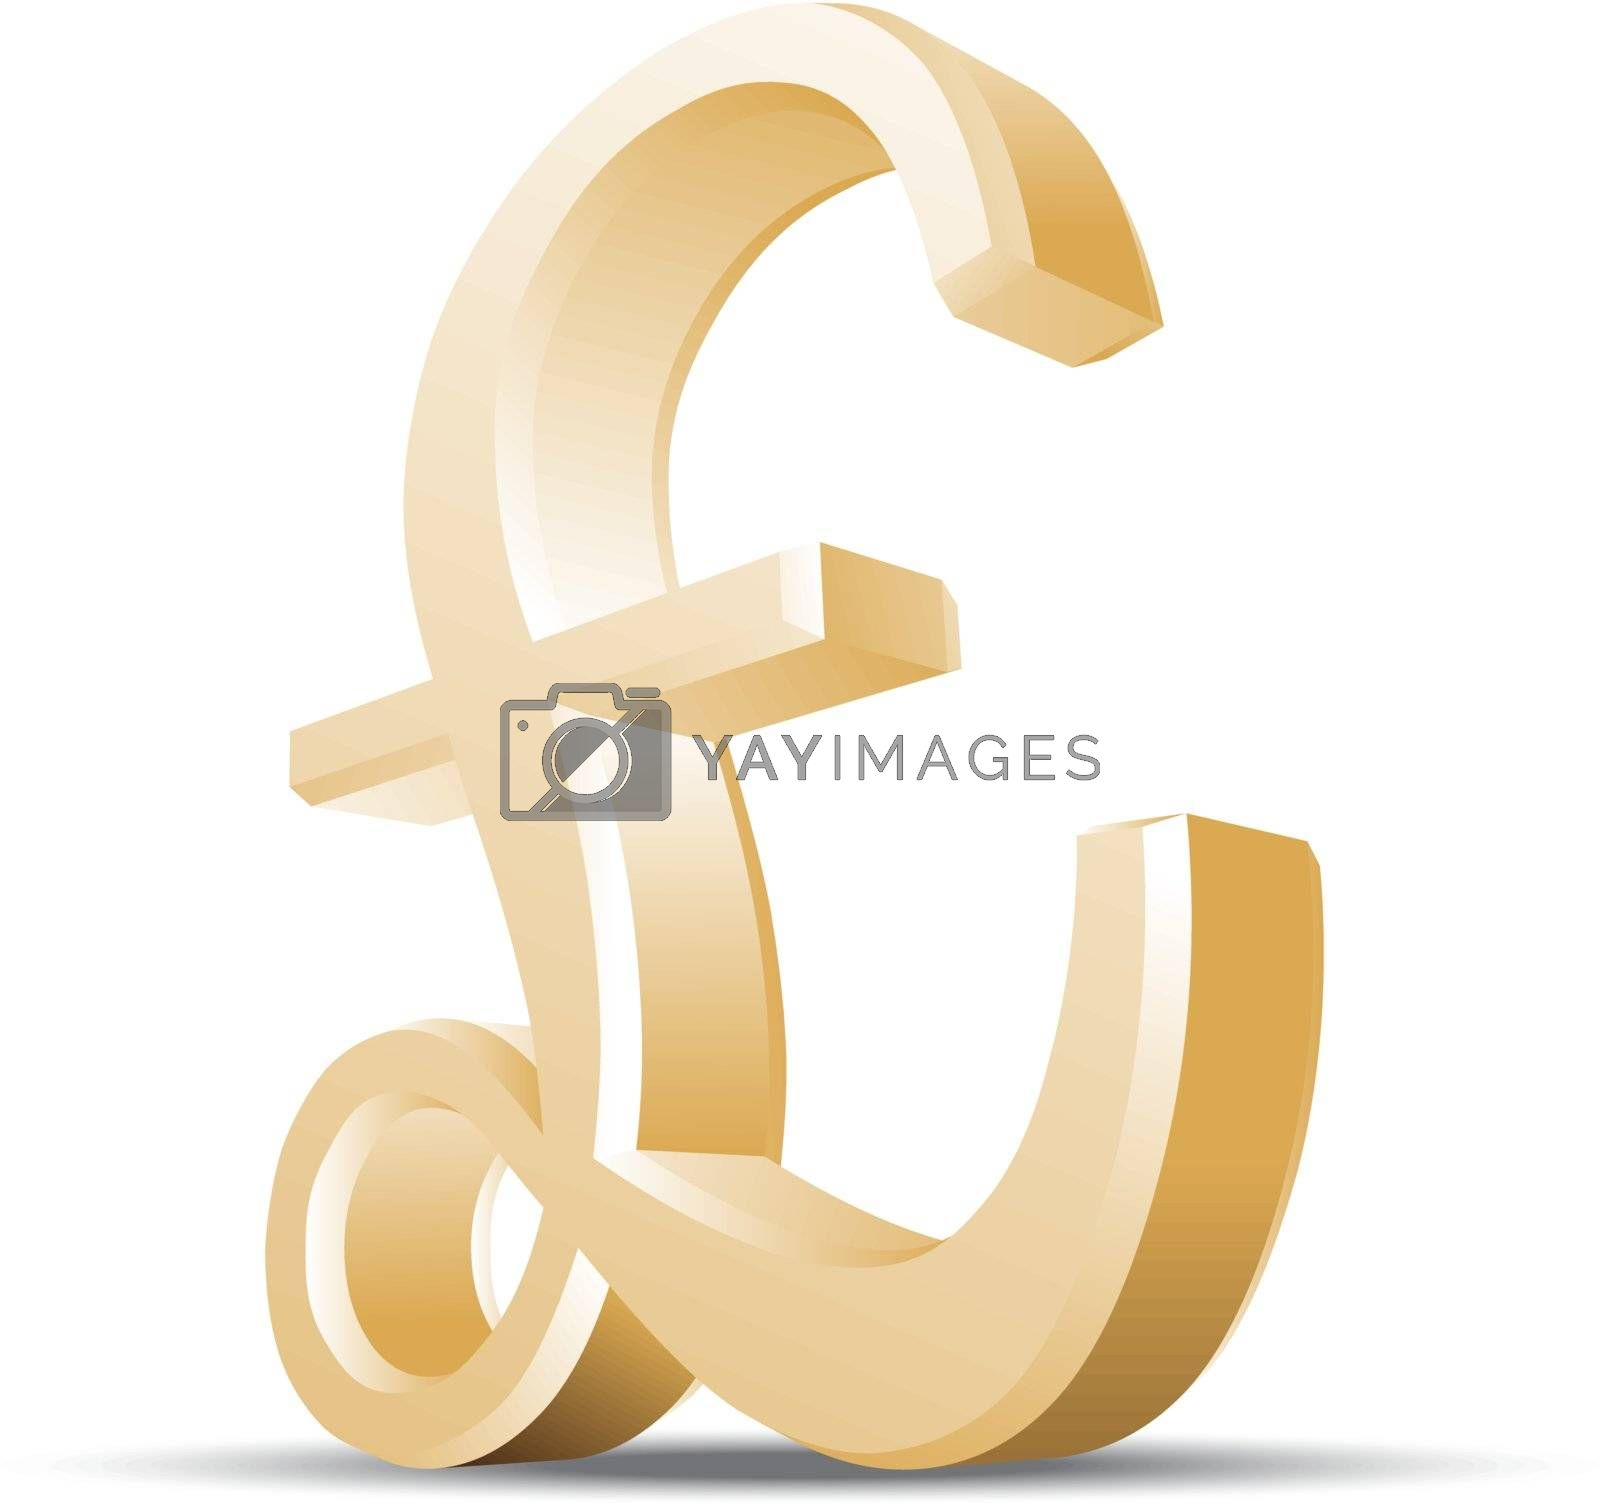 pound vector illustration by jfcalheiros